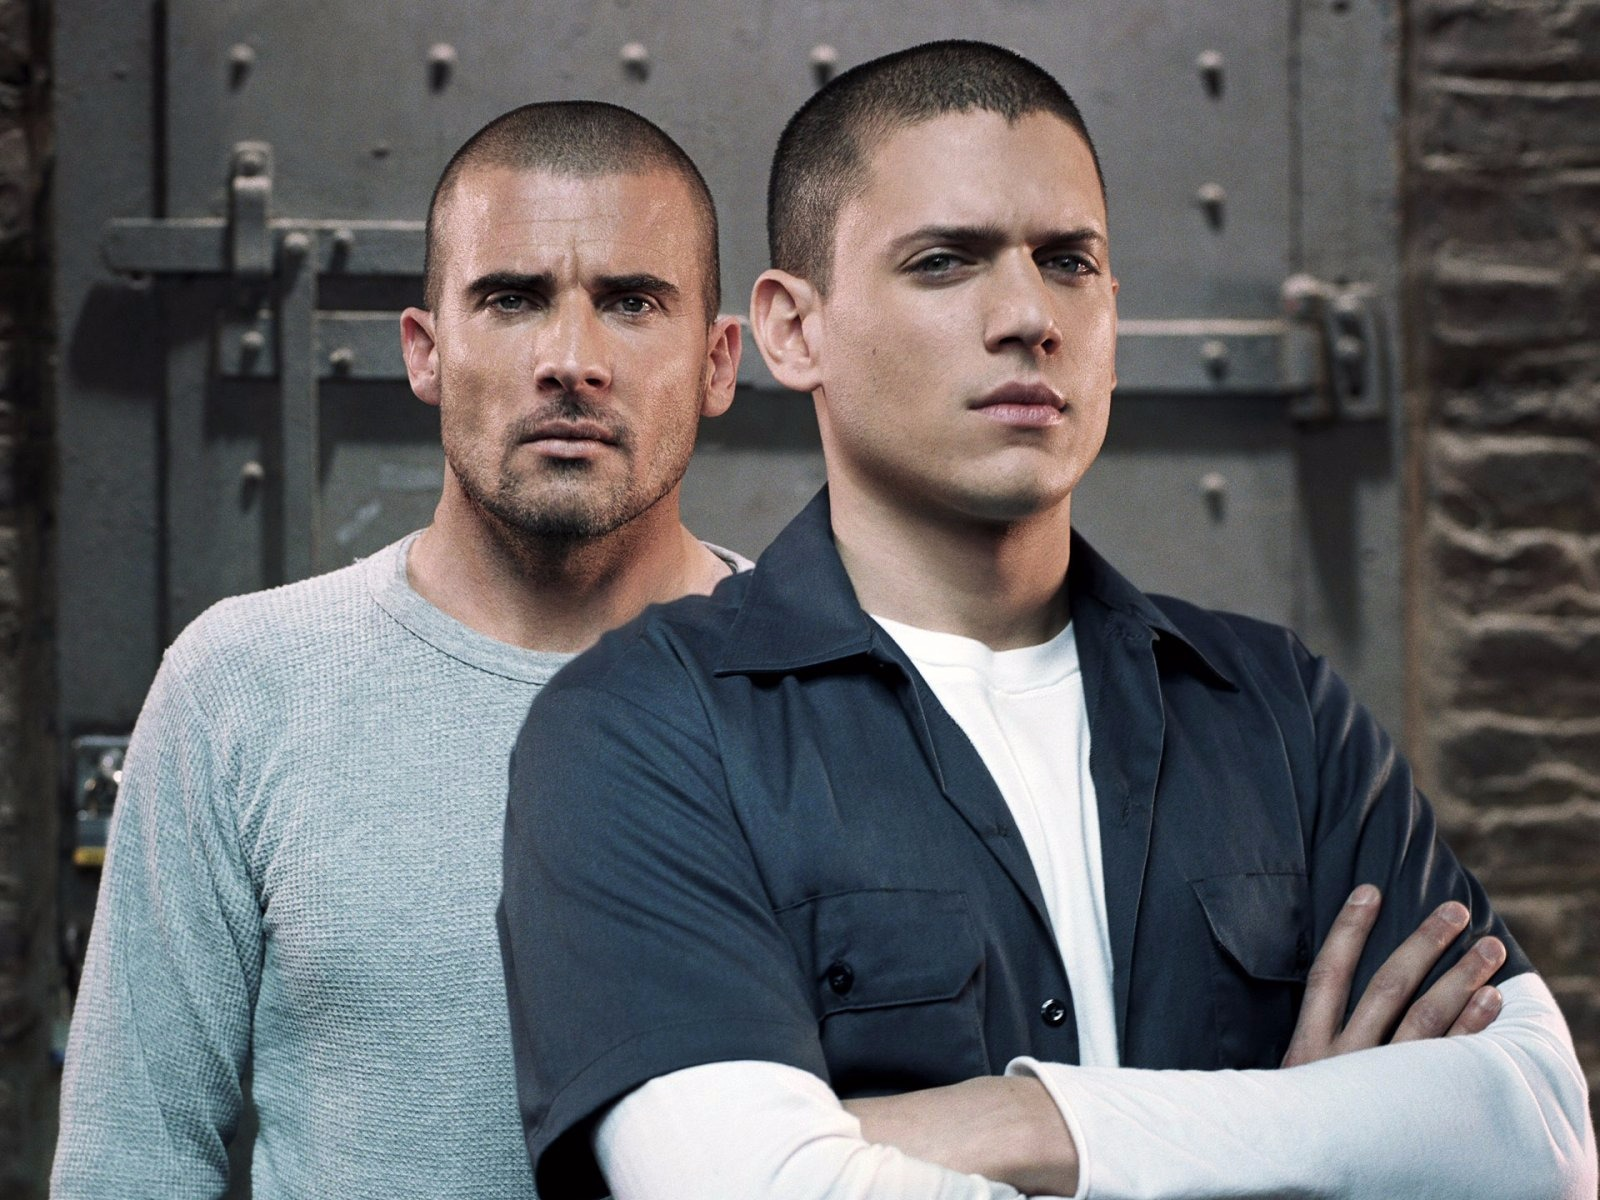 prison-break-sequel-is-moving-forward-at-fox.jpg